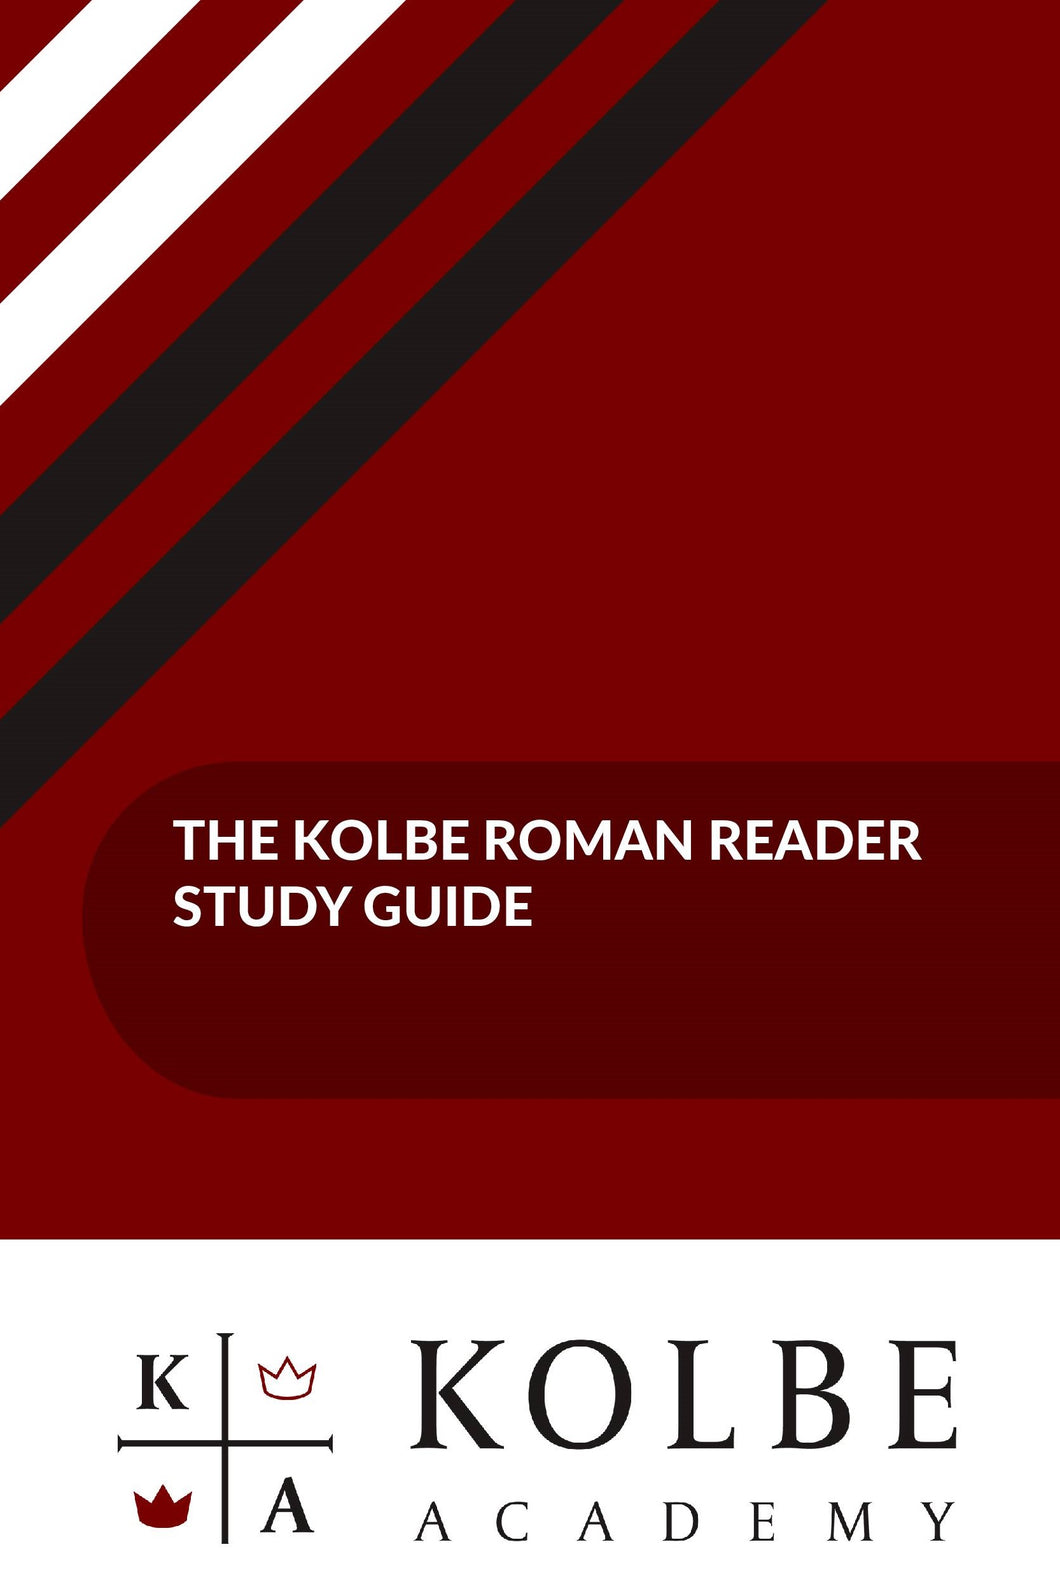 The Roman Reader Study Guides